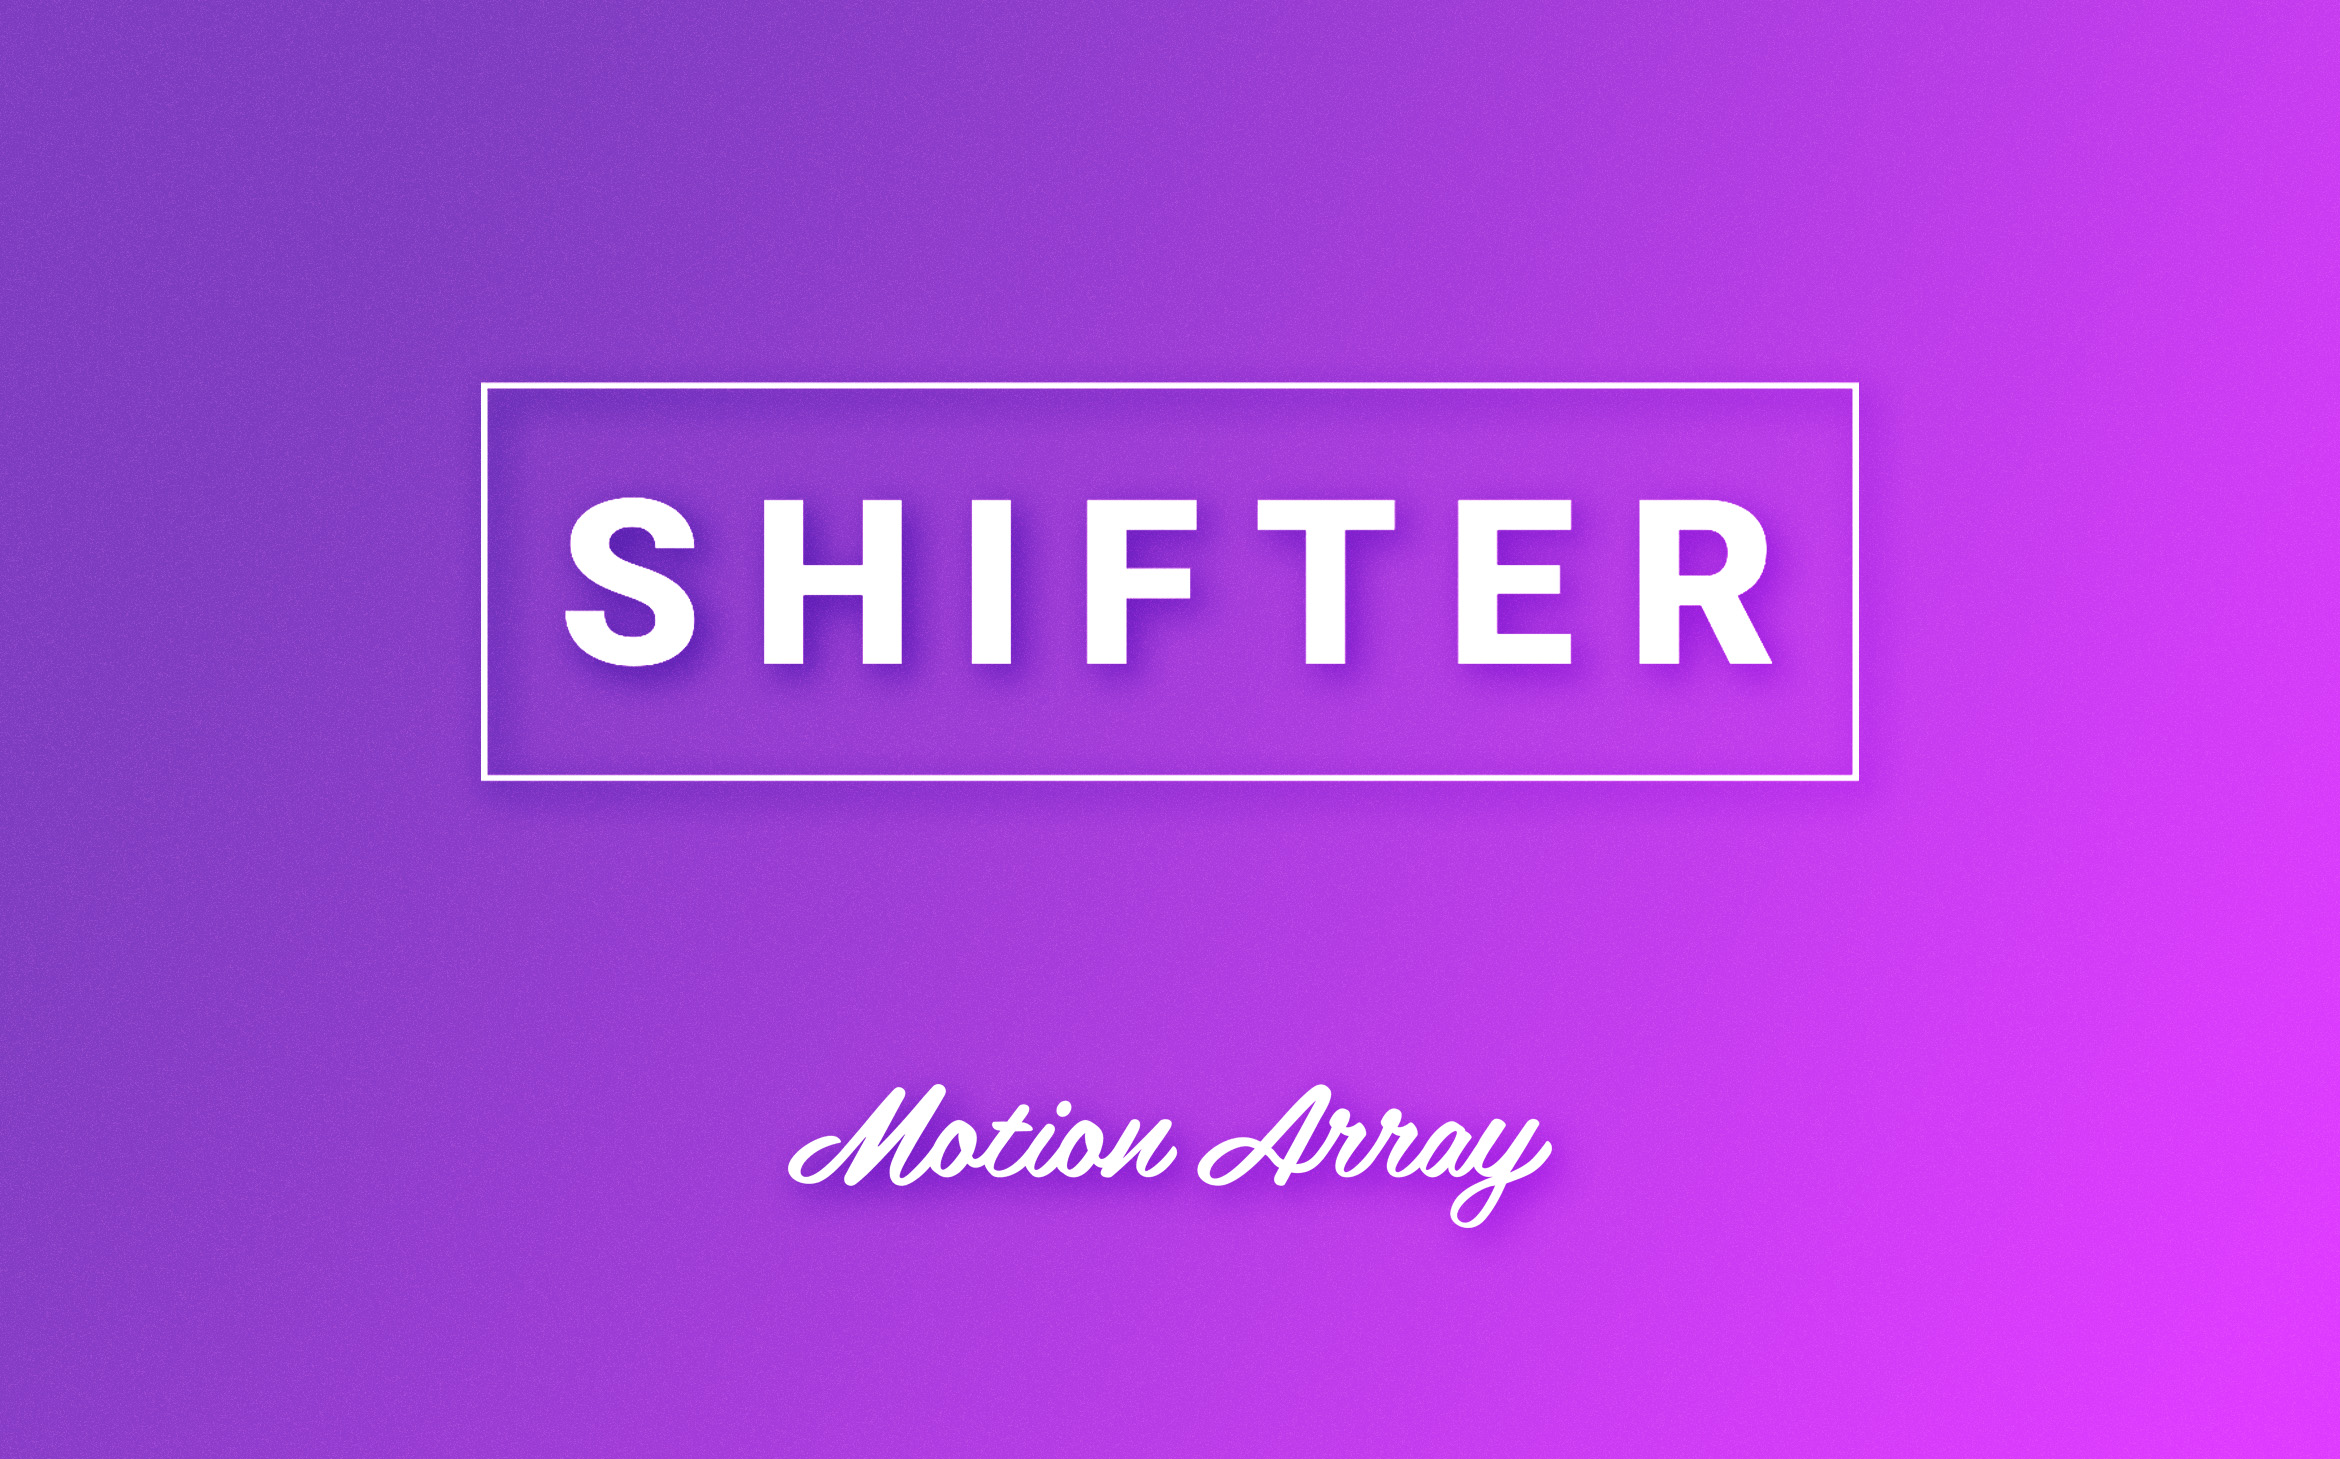 shifter-transitions-premiere-pro.jpg